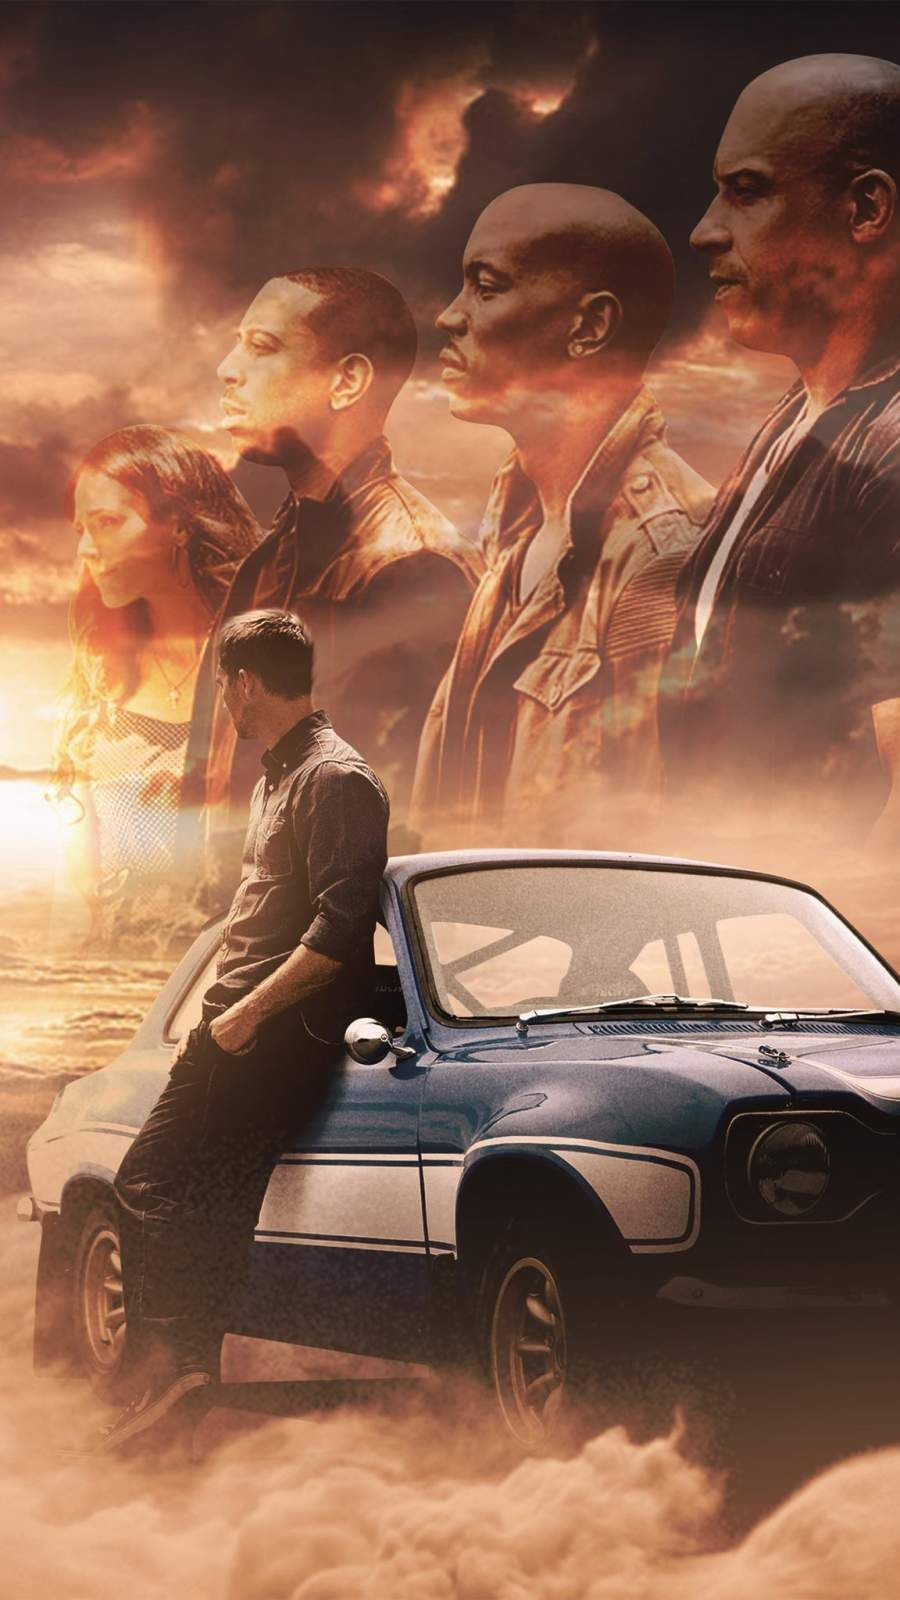 Fast and Furious iPhone Wallpaper | Fast and furious, Paul walker  wallpaper, Movie fast and furious